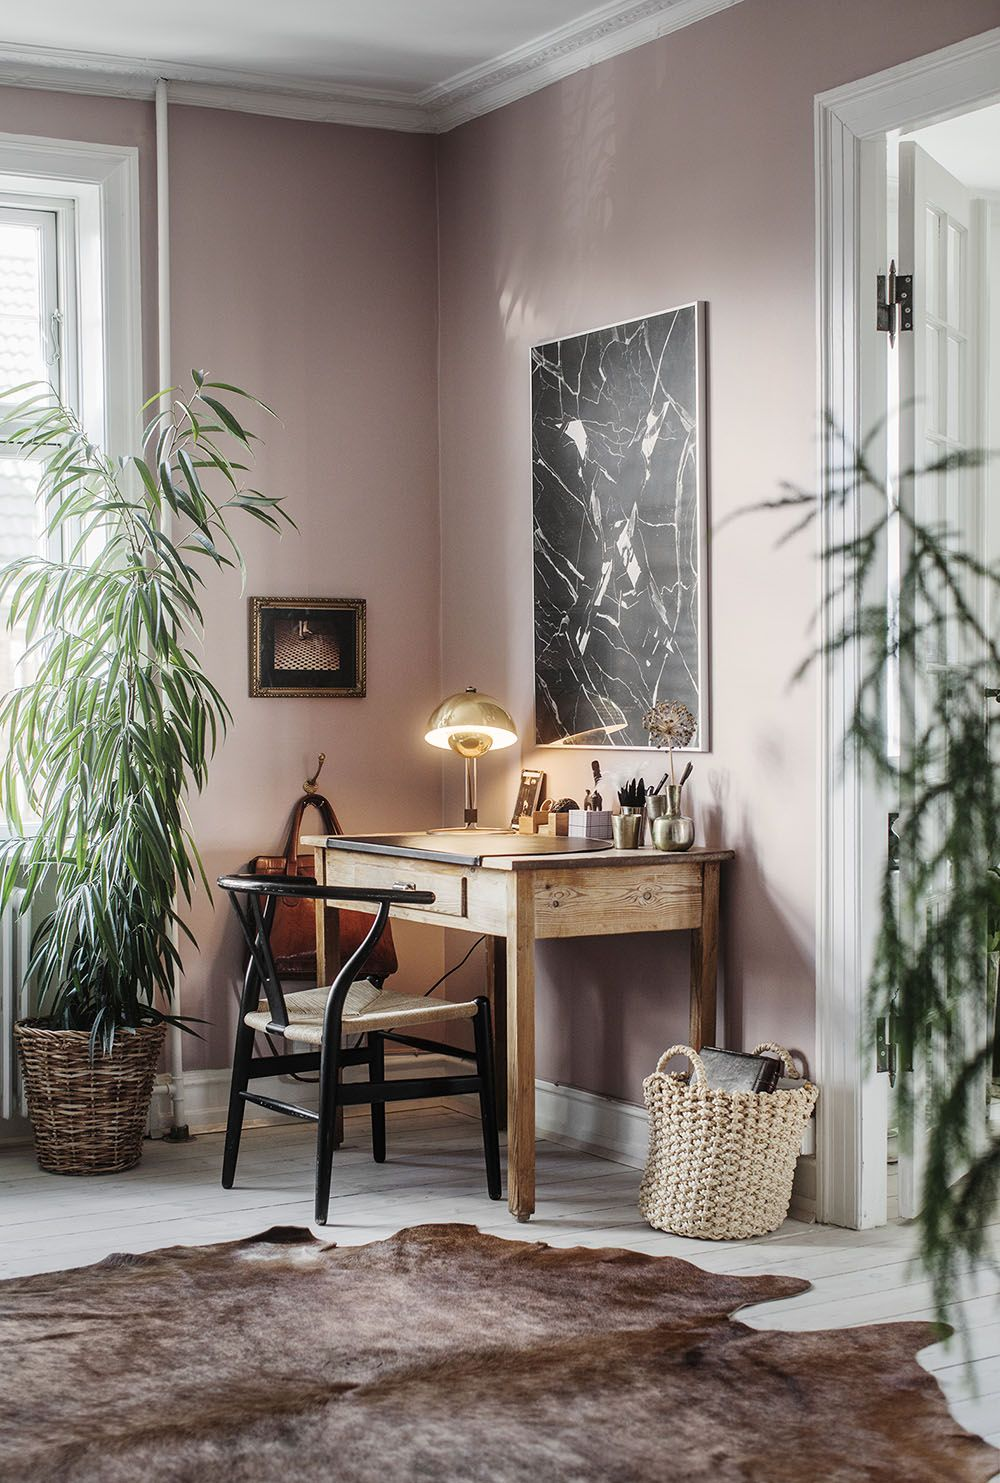 Copenhagen apartment get the look with dunn edwards - Shades of pink for bedroom walls ...